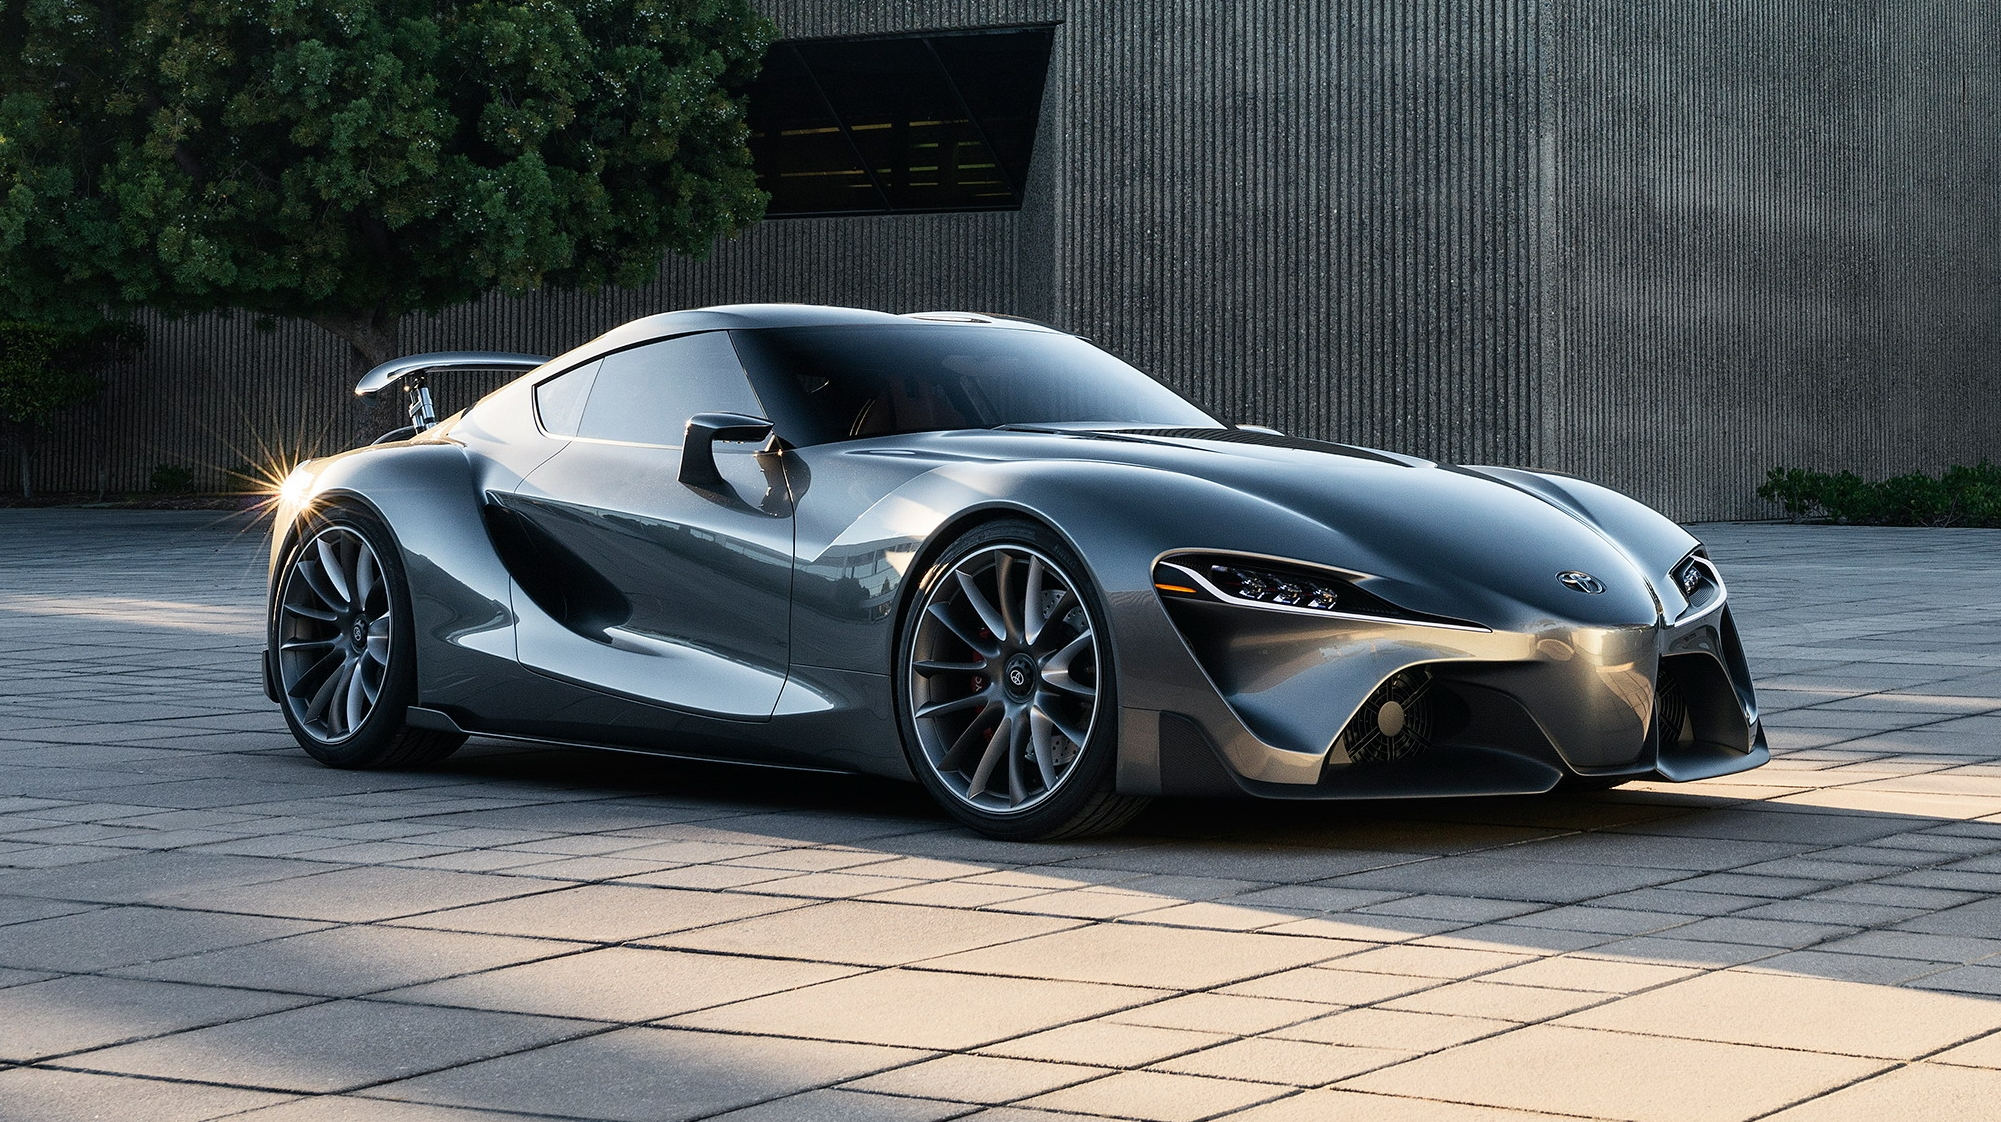 Toyota Bmw Sister Sports Cars To Be Vastly Different Top Speed